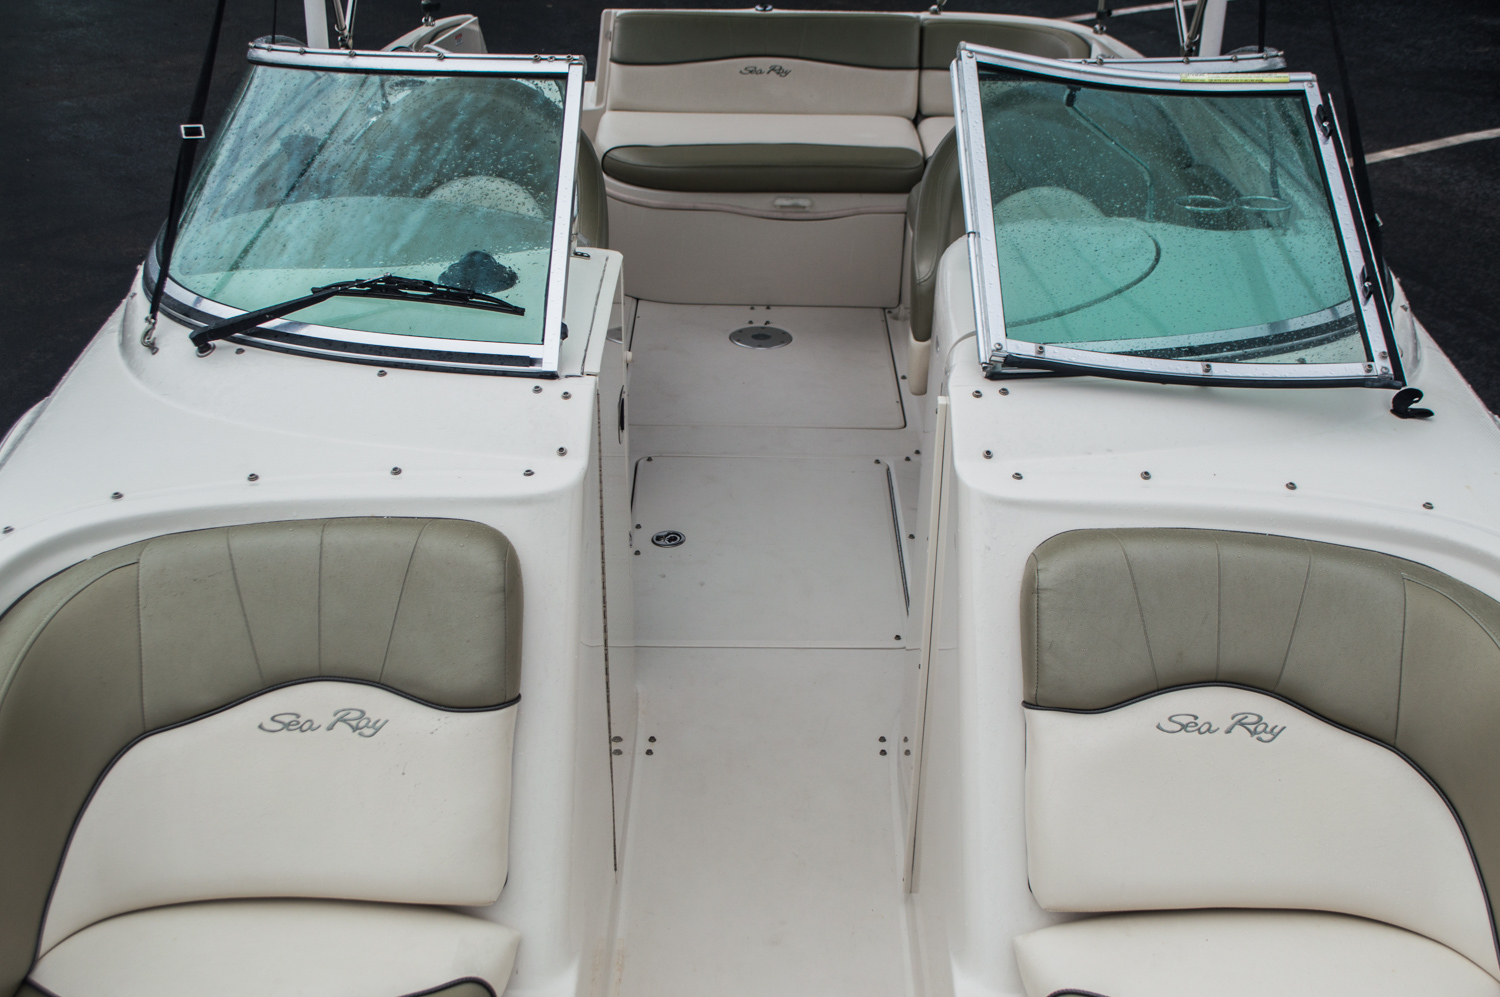 Thumbnail 11 for Used 2005 Sea Ray 240 Sundeck boat for sale in West Palm Beach, FL